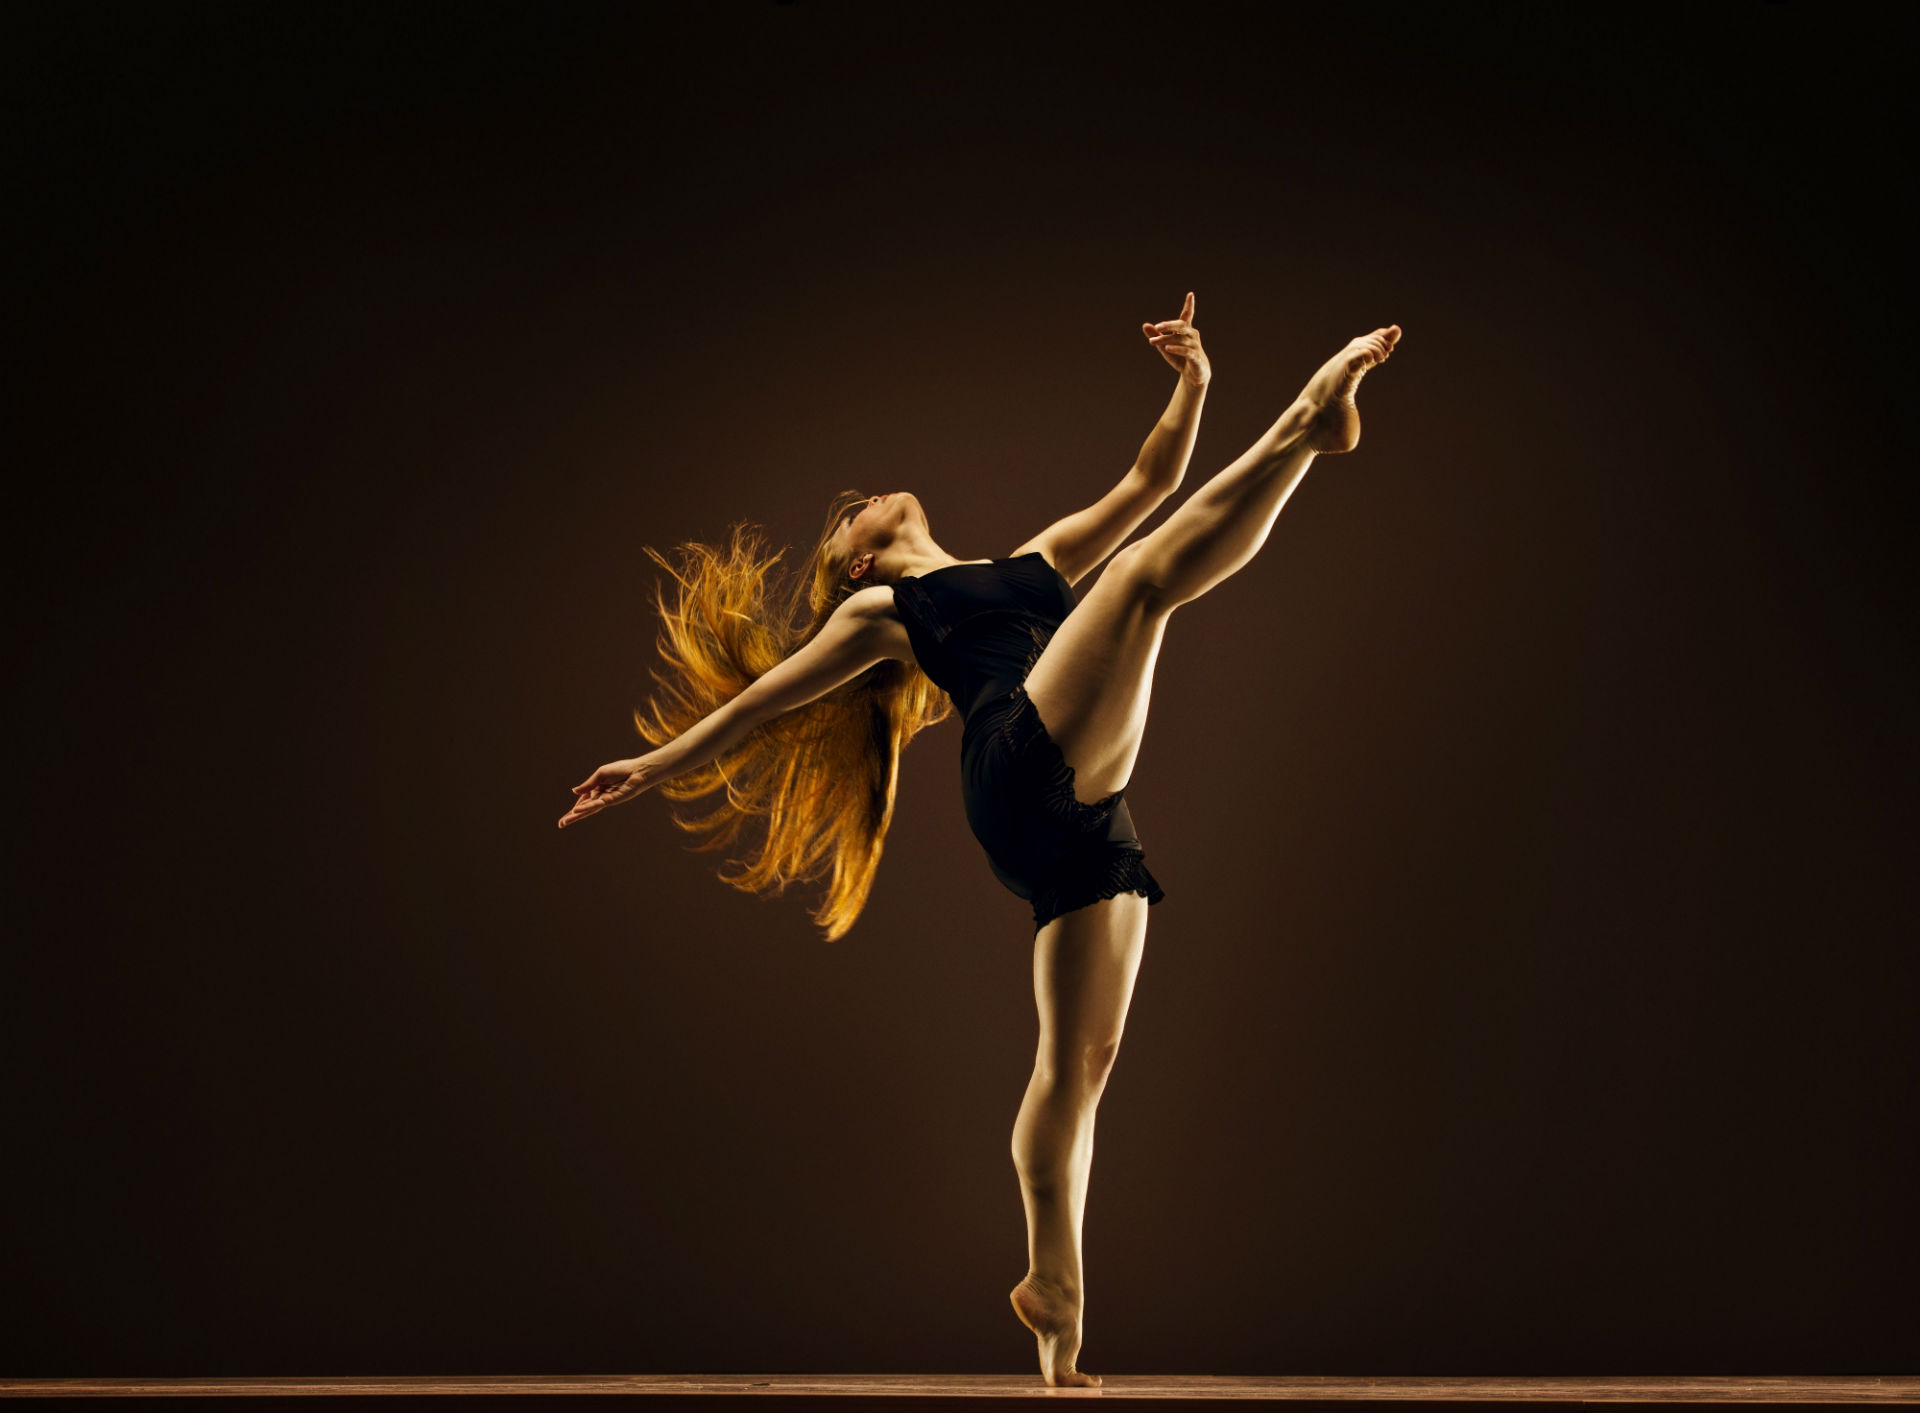 i heart dance wallpapers - photo #42